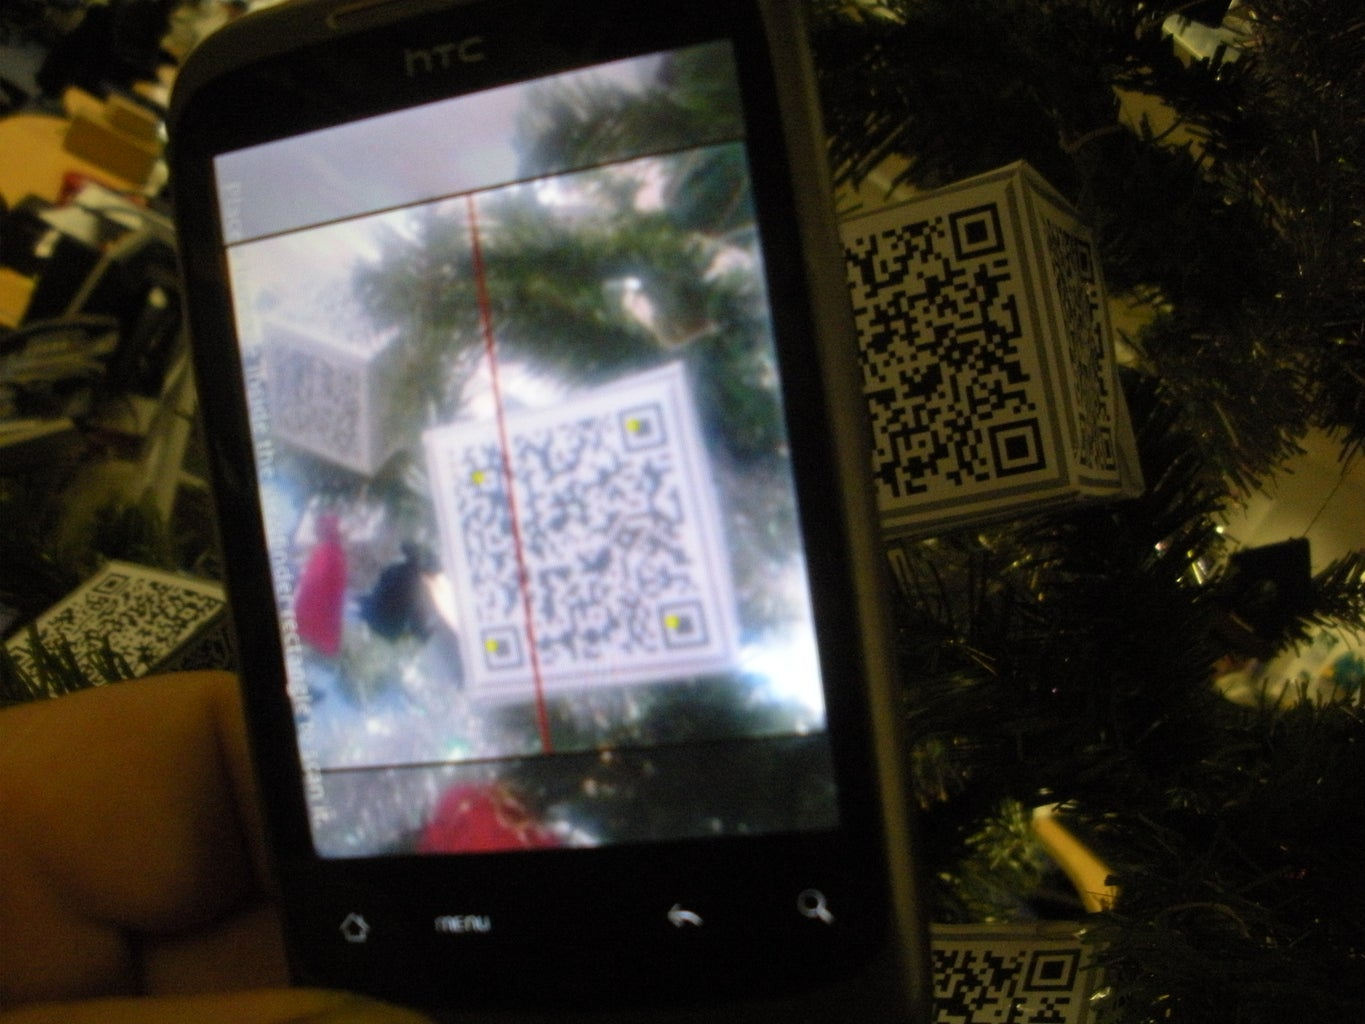 Scan the Christmas Tree Decorations